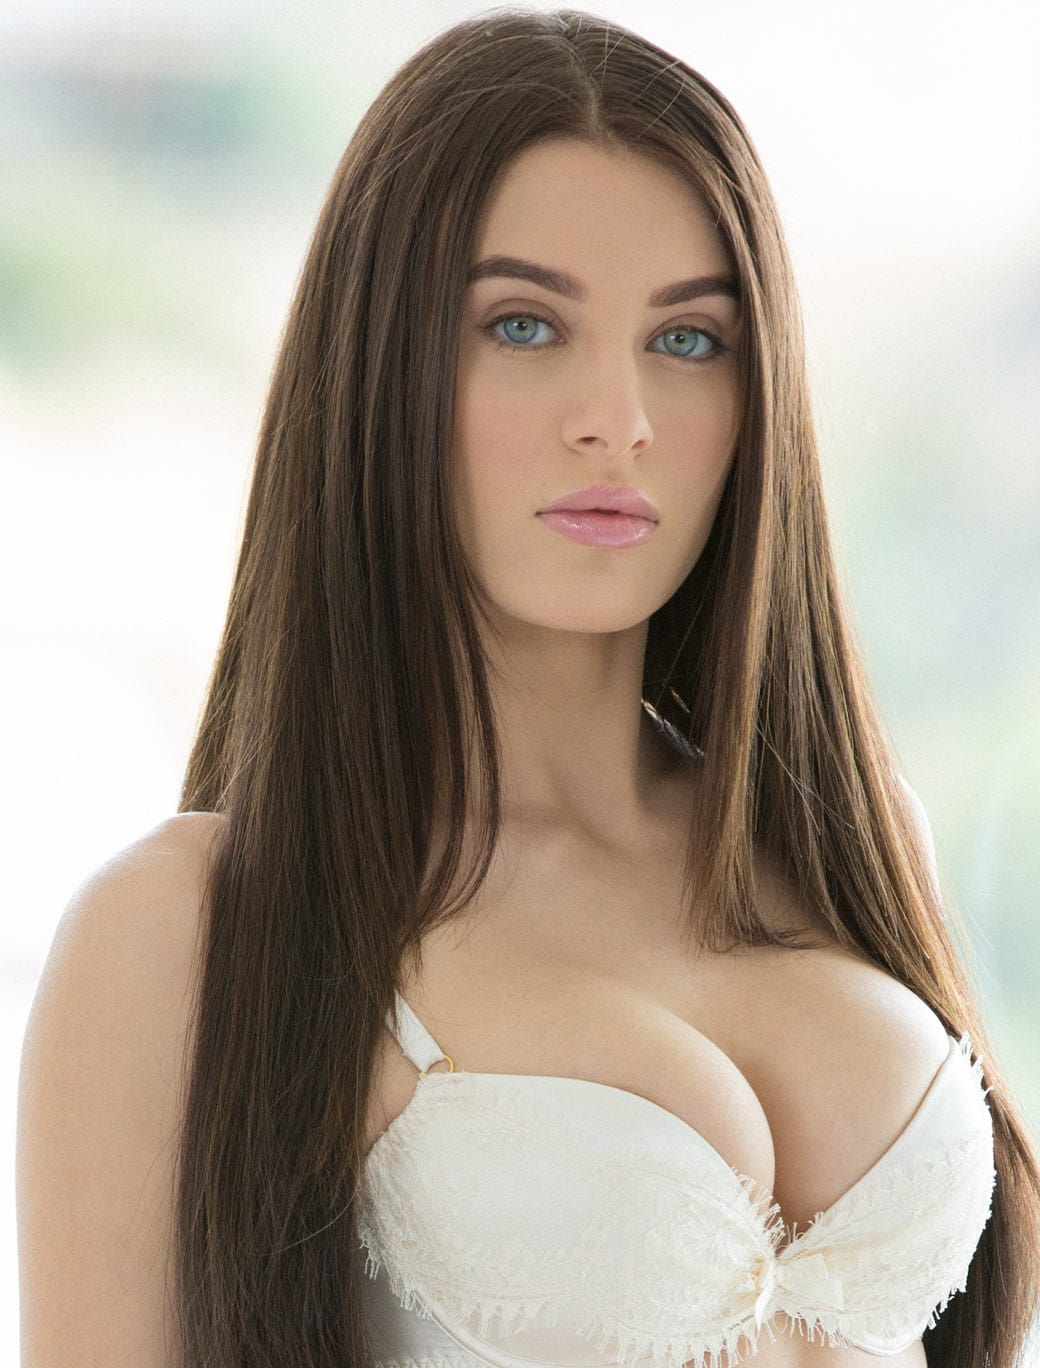 Lana rhoades videos in hd